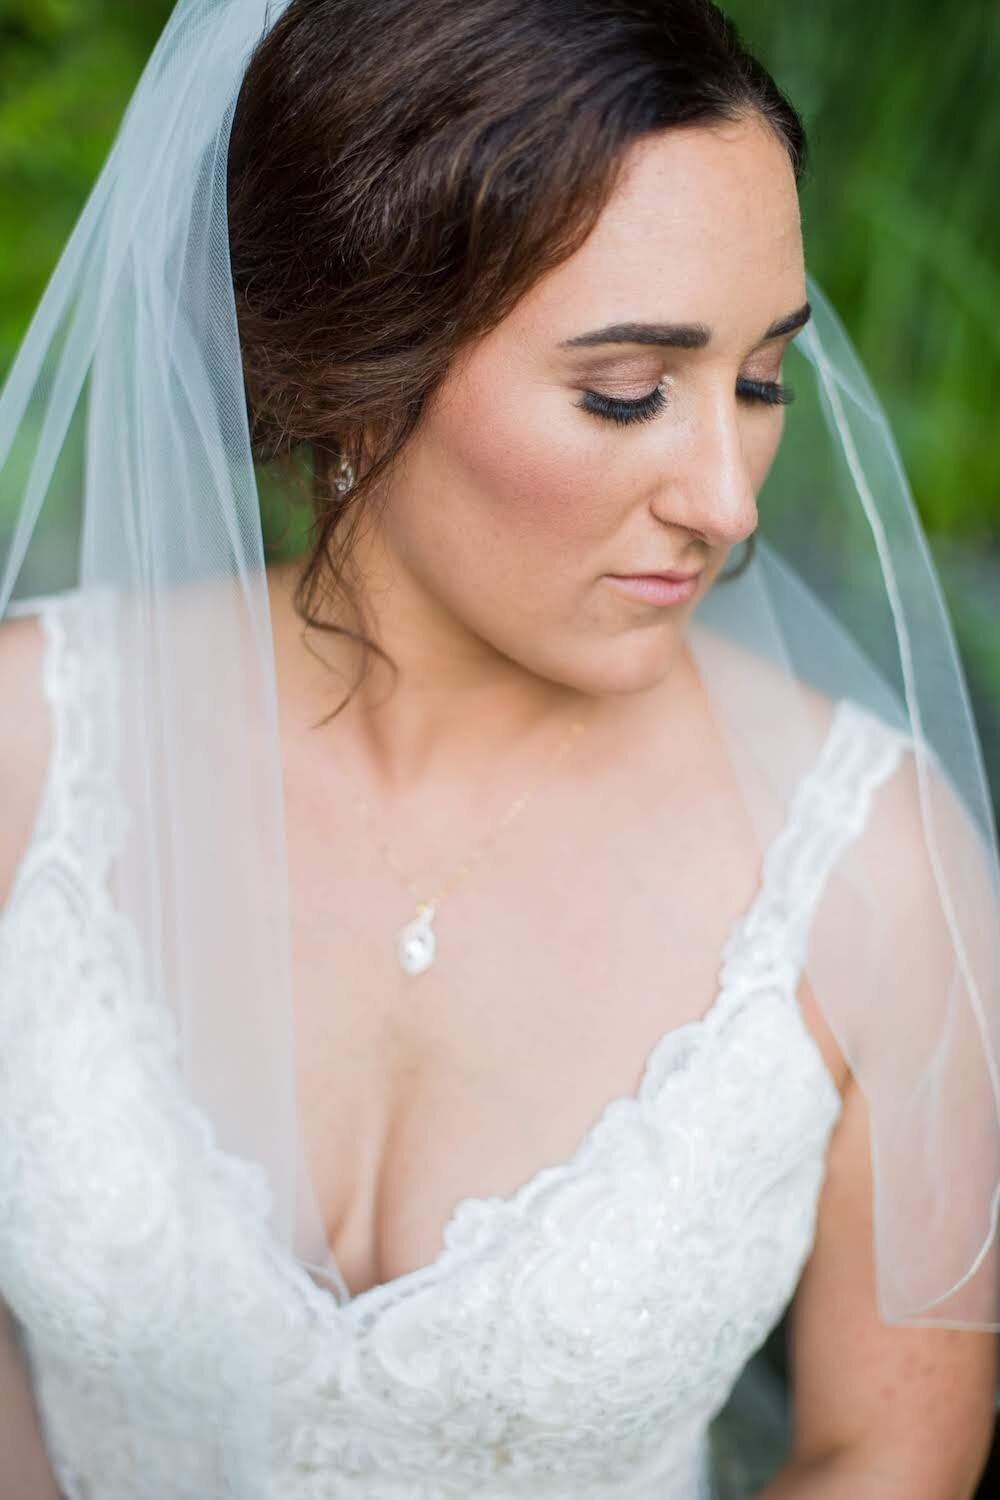 ct-wedding-hair-and-makeup-kiss-and-makeup-97